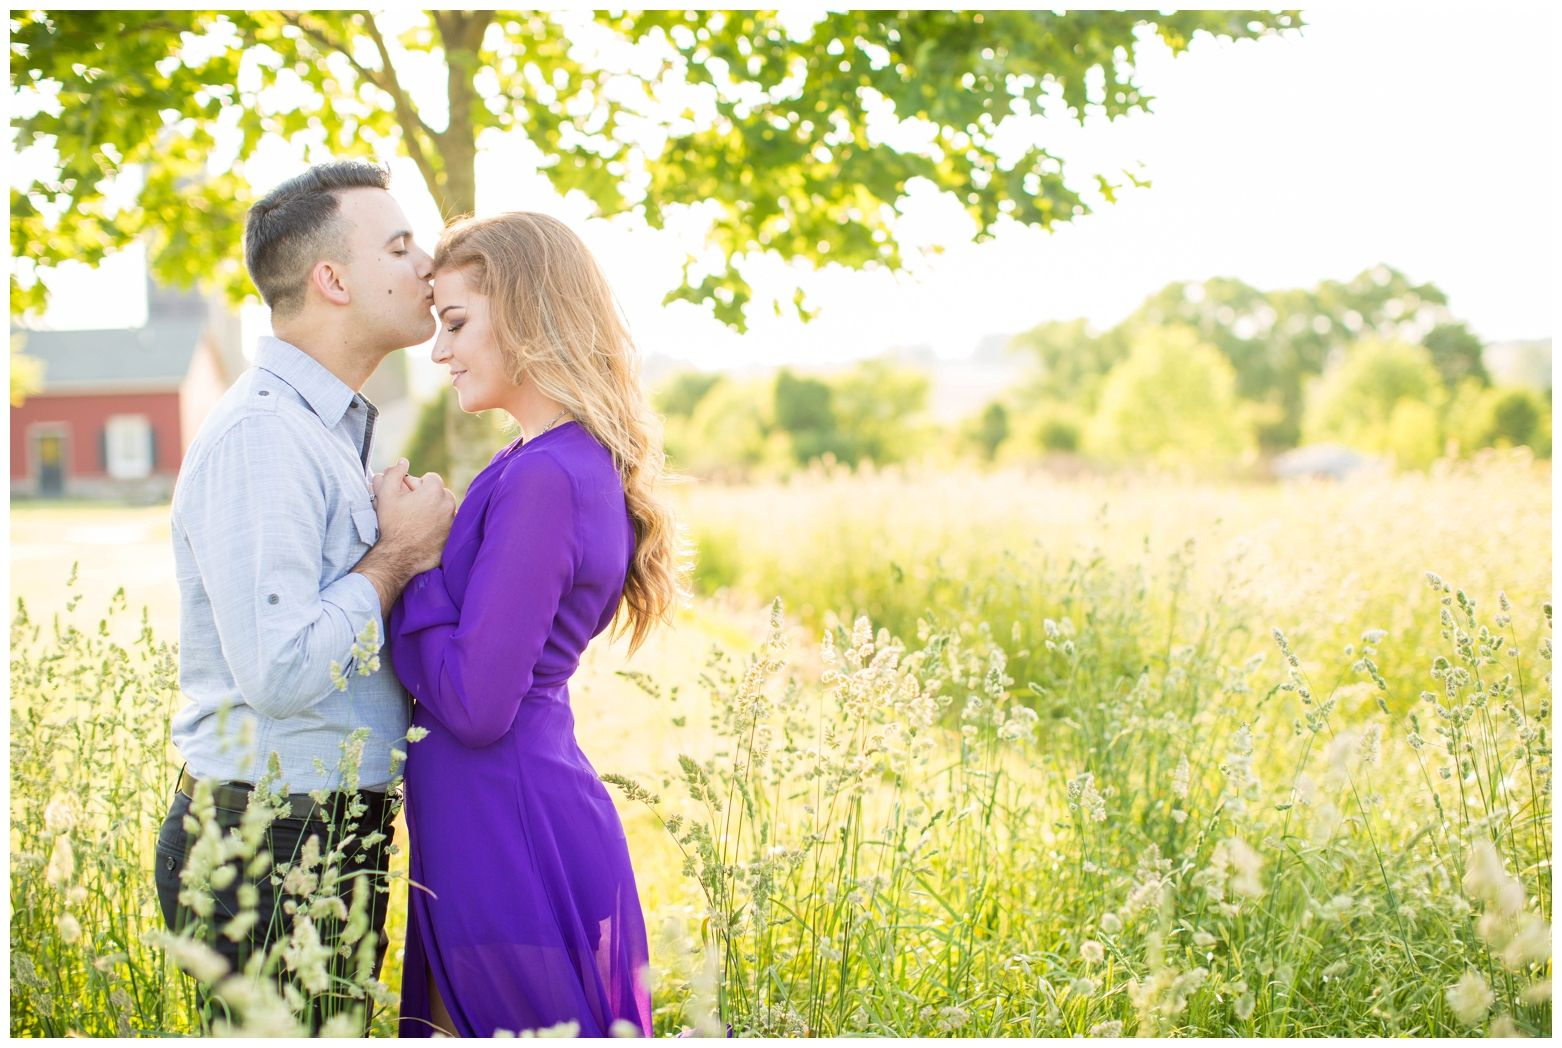 Rural Rural Golden Hour Engagement Session | Purple Dress | Forehead Kisses | Fredericksburg, Virginia | Hope Taylor Photography